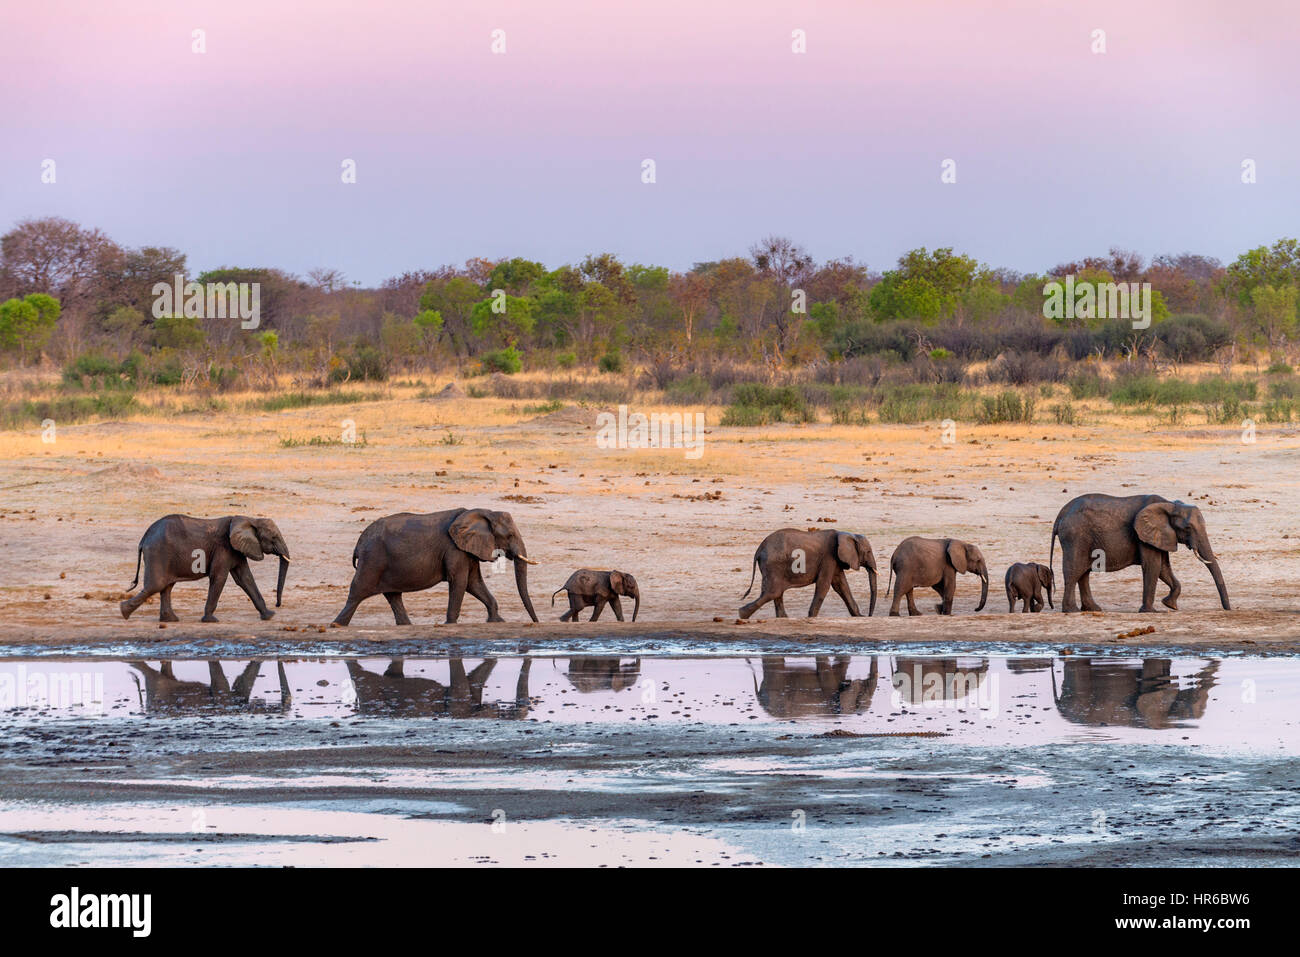 a-herd-of-elephants-is-reflected-in-a-wa